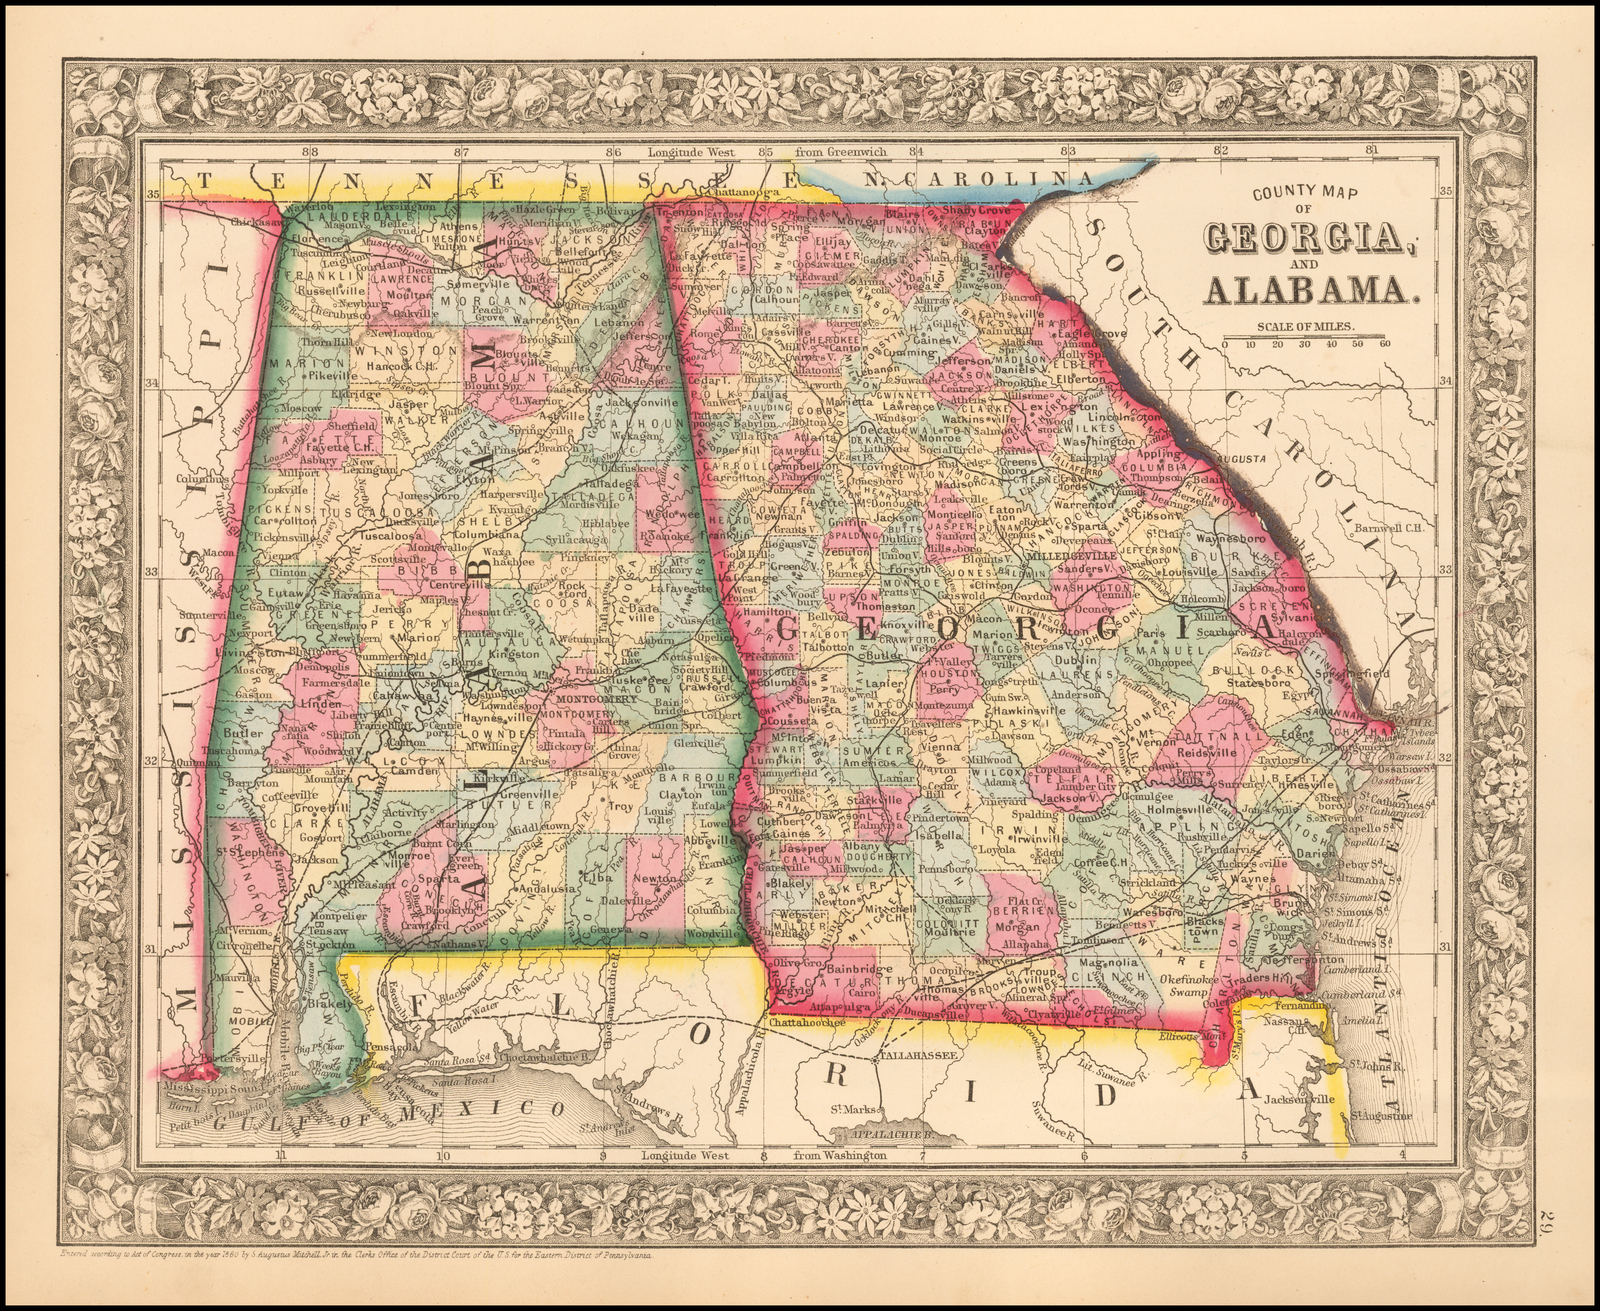 County Map of Georgia and Alabama - Barry Lawrence Ruderman ...